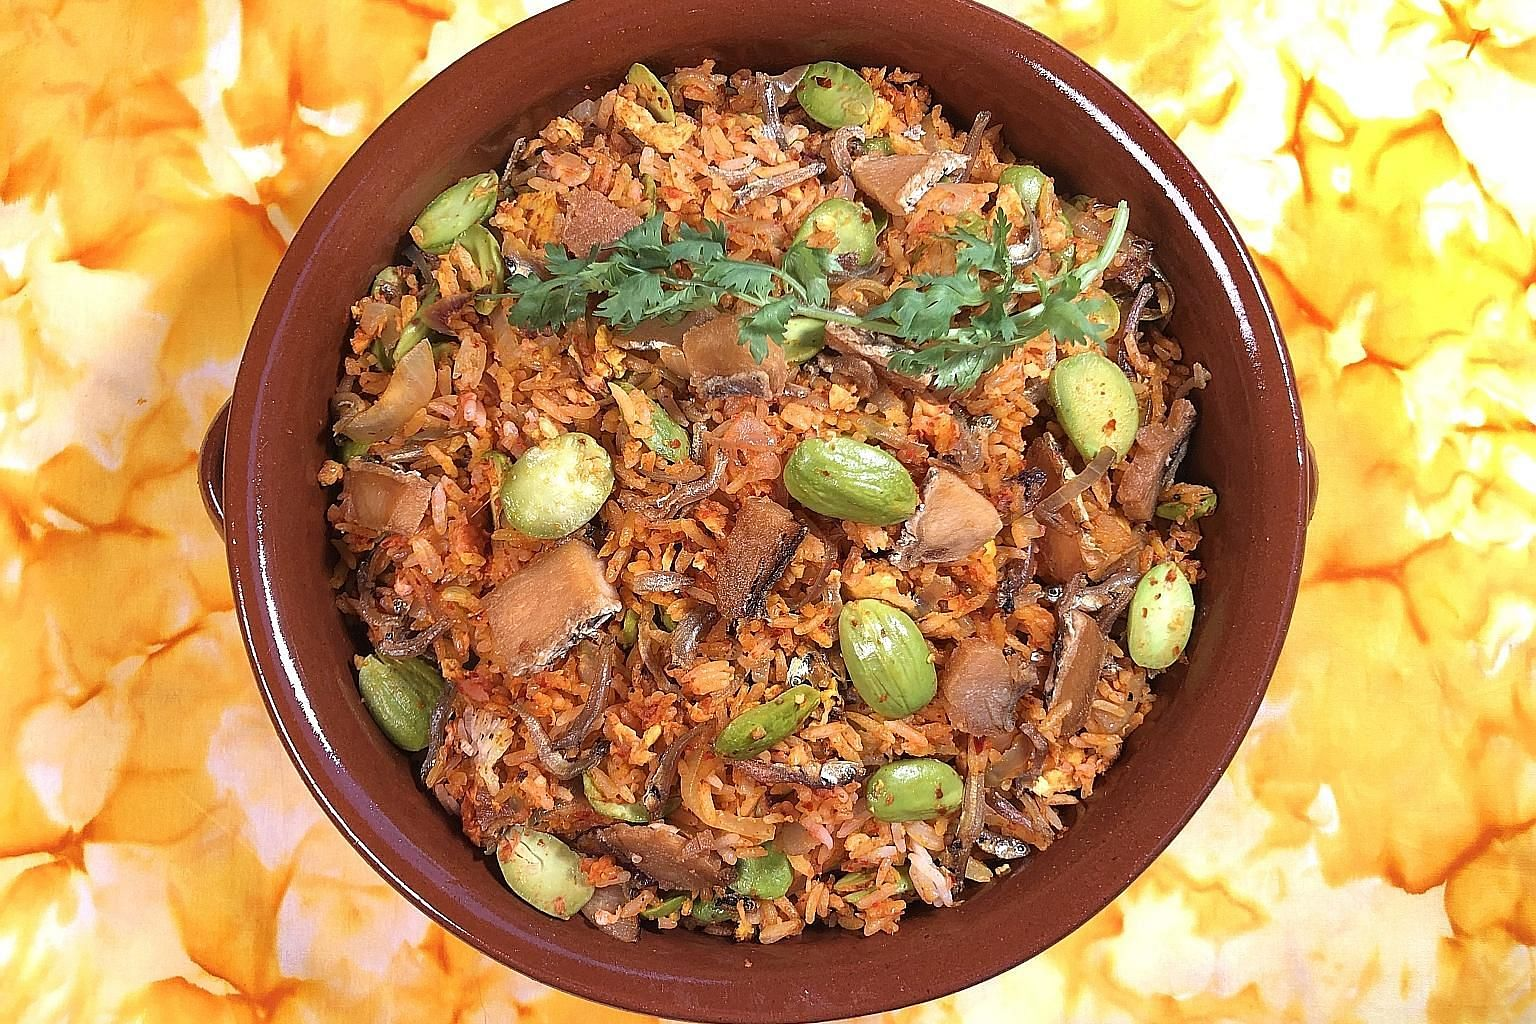 When cooking petai and salted fish fried rice, you can blanch the petai beans if you like them to be more tender.